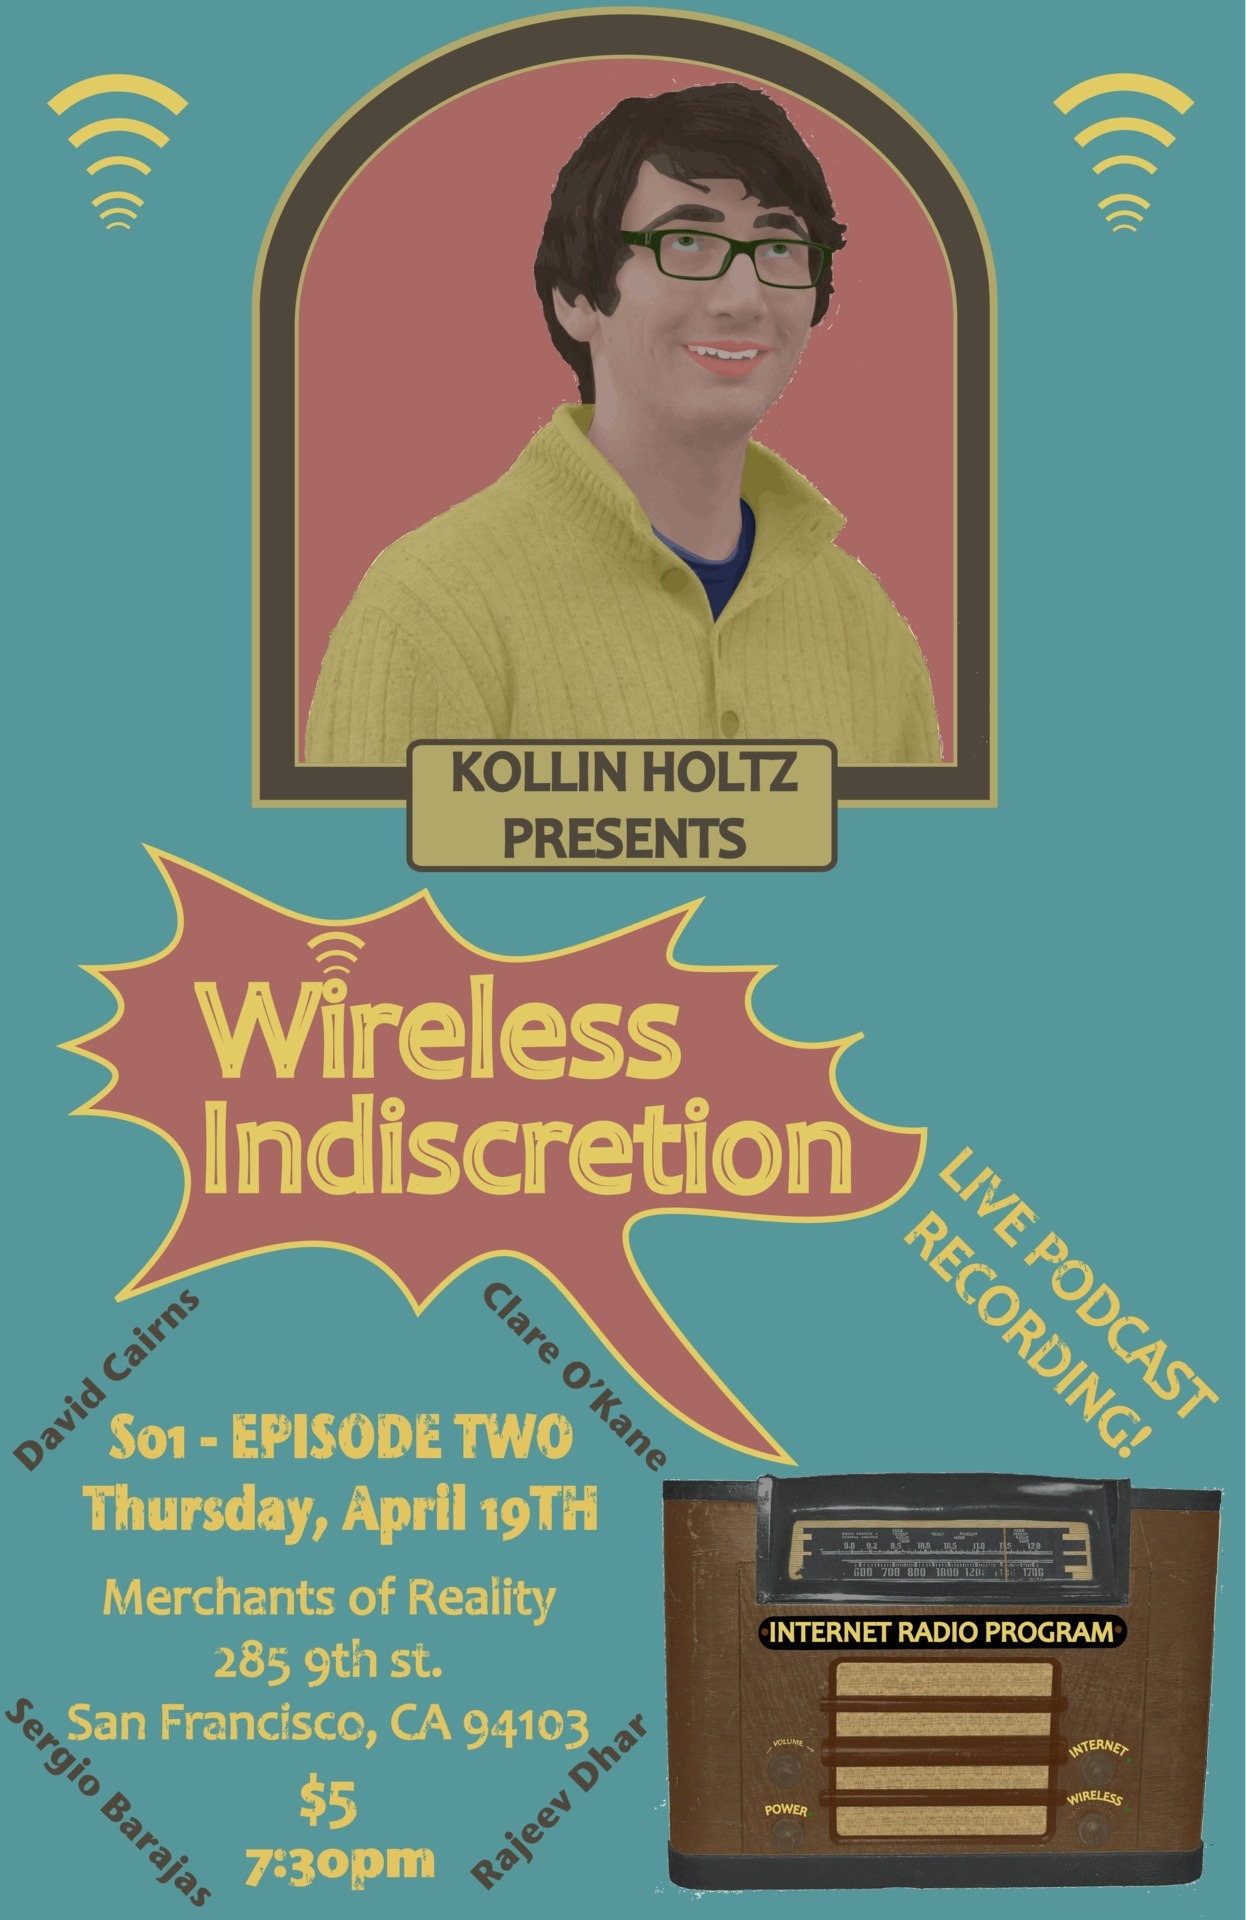 Wireless Indiscretion - EPISODE 2 $5 comedy $1 beers. Merchants of Reality 285 9th st. - San Francisco CA 94103 - SOMA